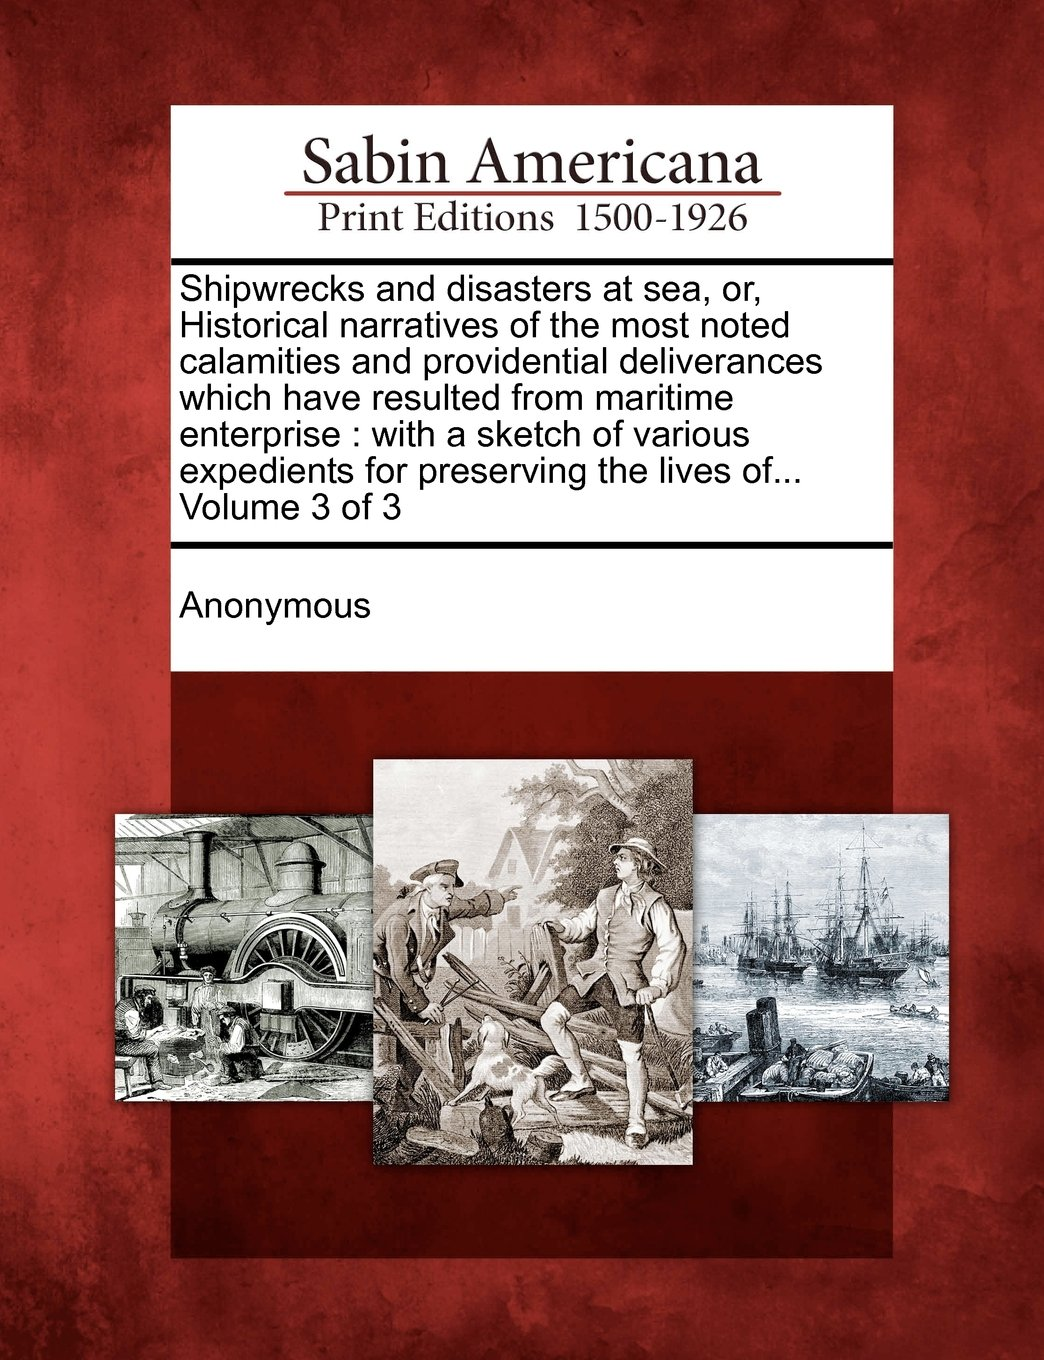 Shipwrecks and disasters at sea, or, Historical narratives of the most noted calamities and providential deliverances which have resulted from ... for preserving the lives of... Volume 3 of 3 PDF